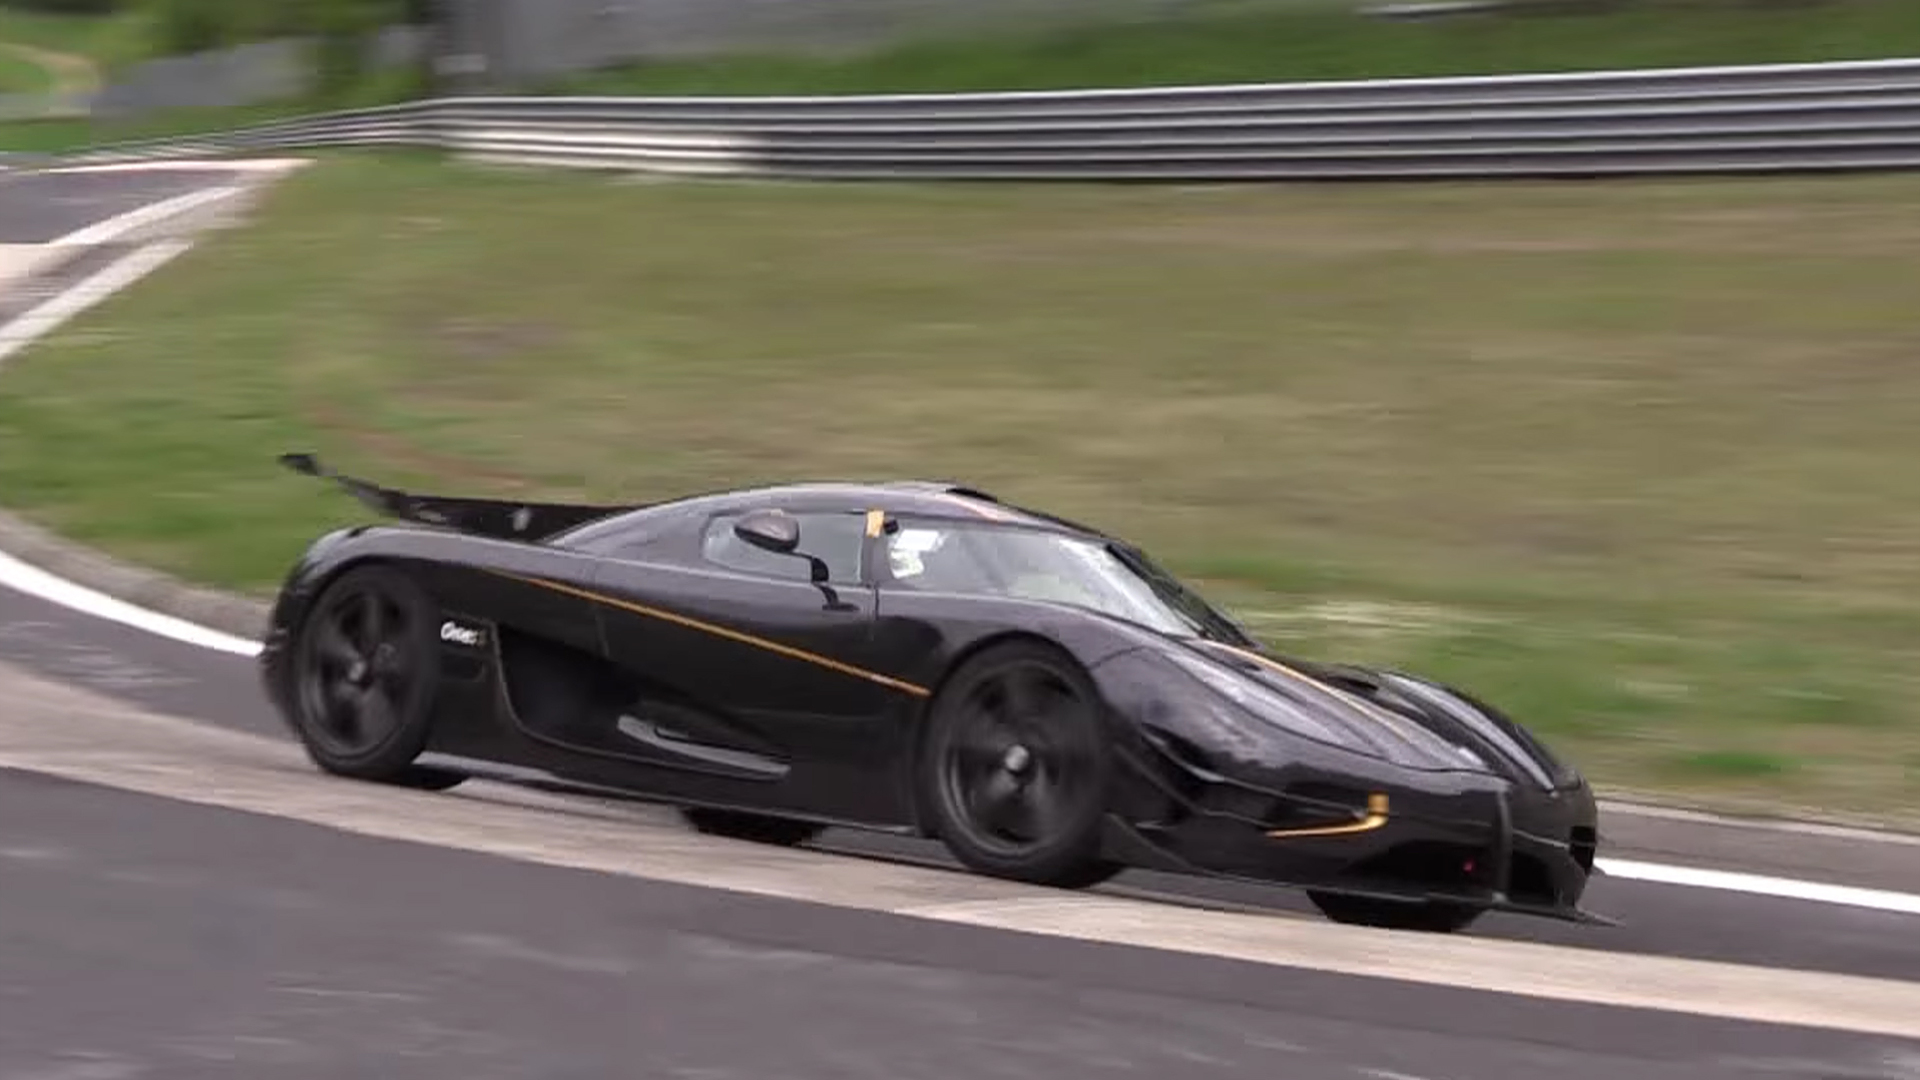 Koenigsegg One1 Spied Lapping Nrburgring Record In New Video